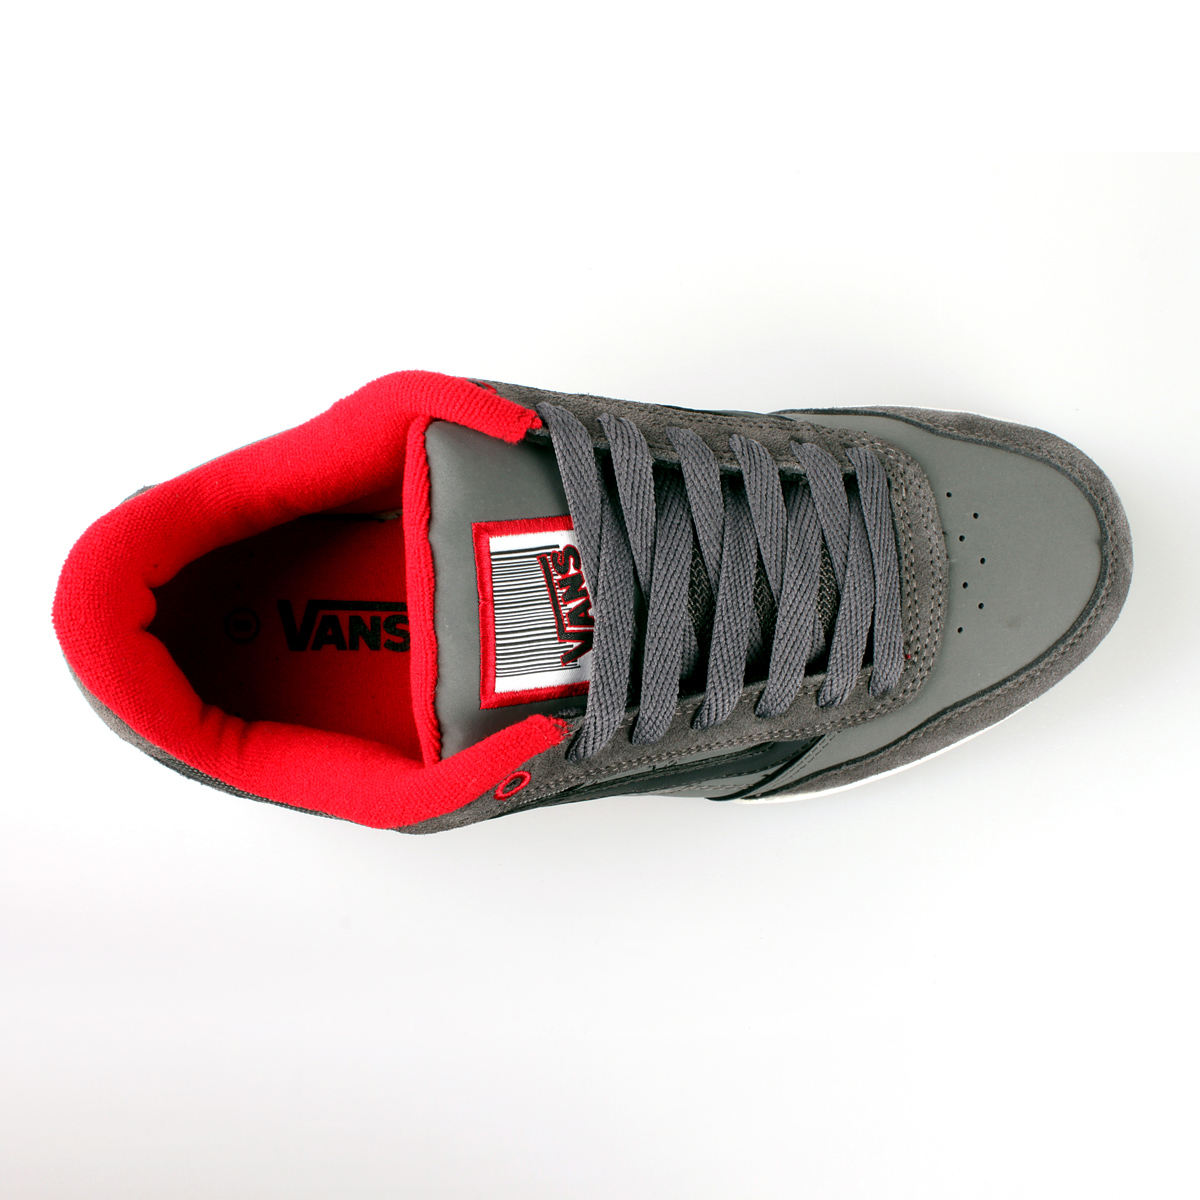 831577461a Vans Wylie shoes pewter black red US 9